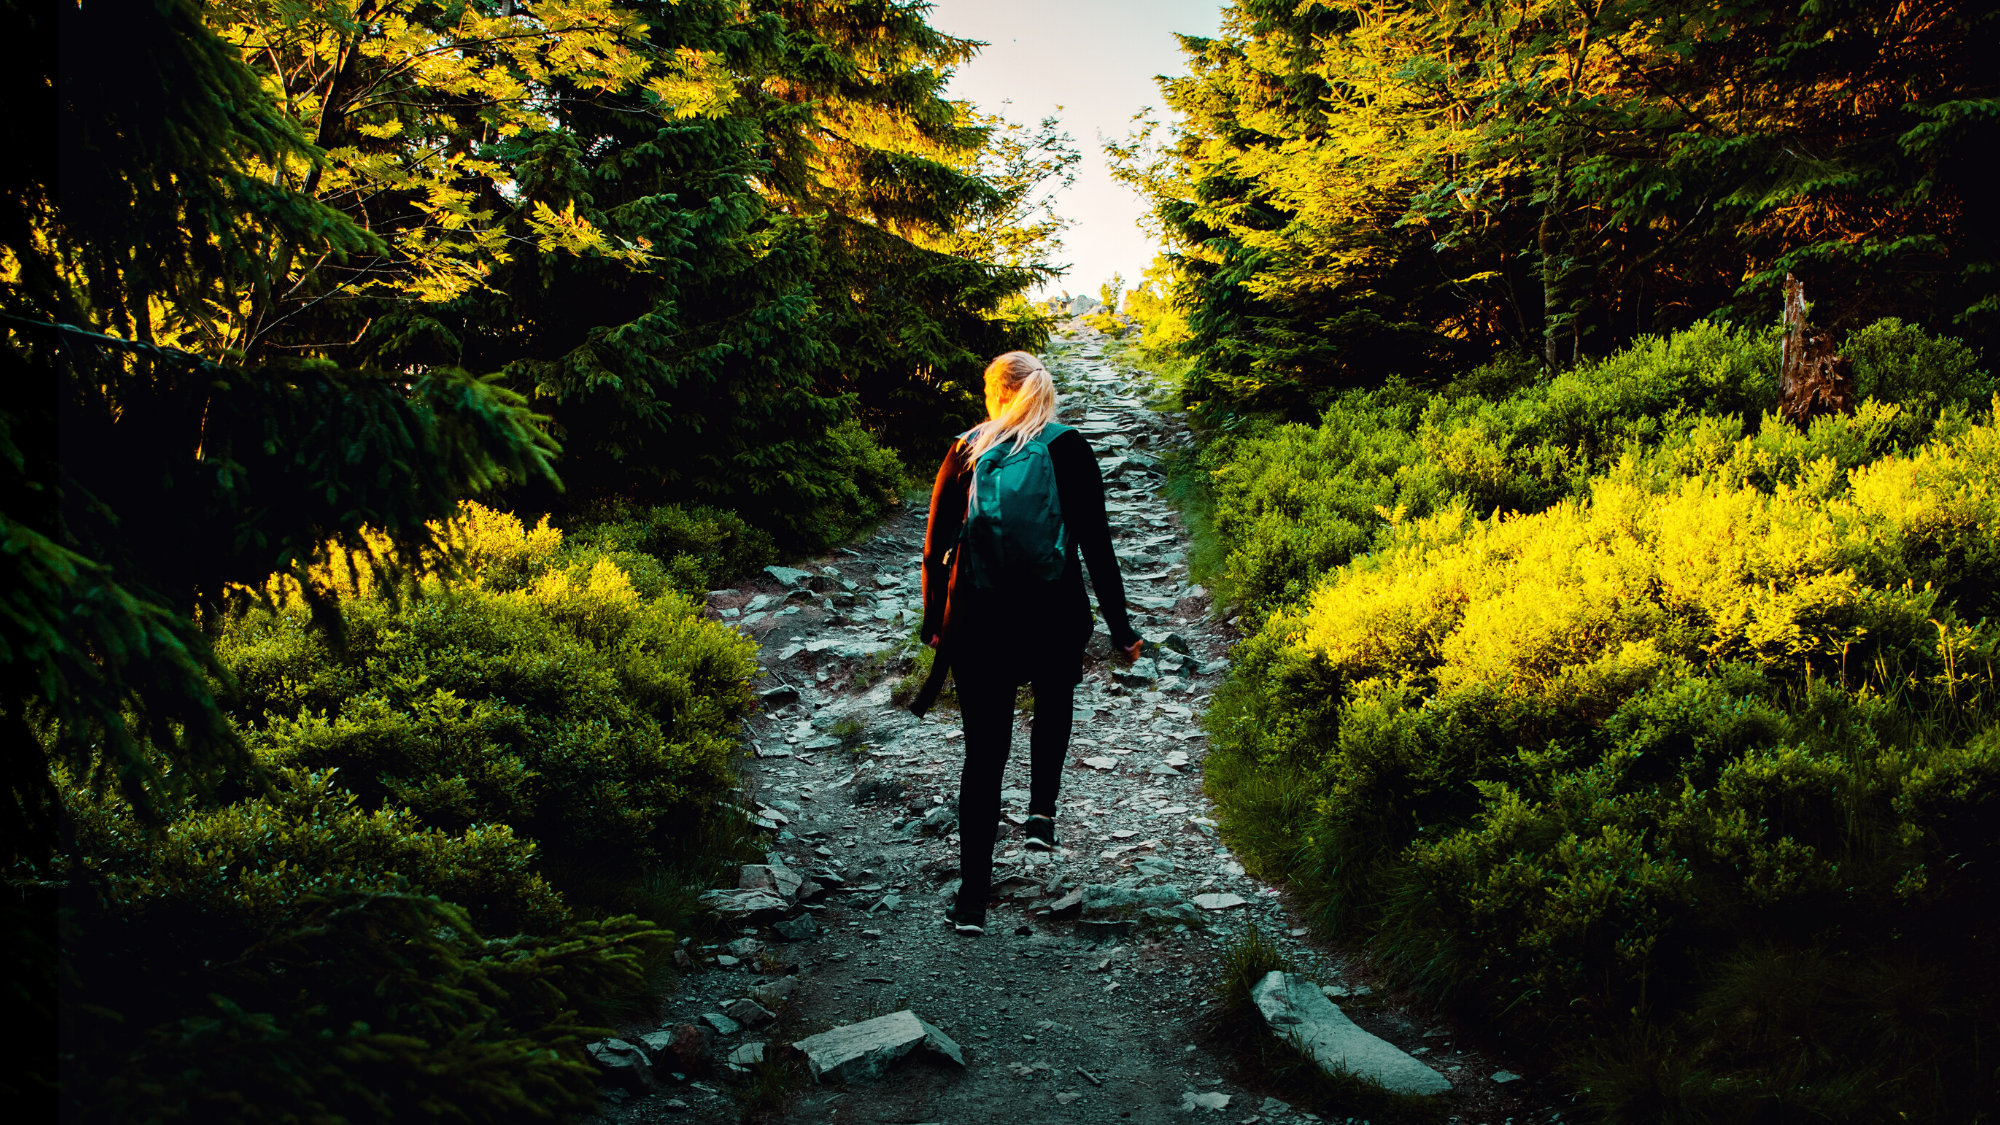 woman walking along a path in nature